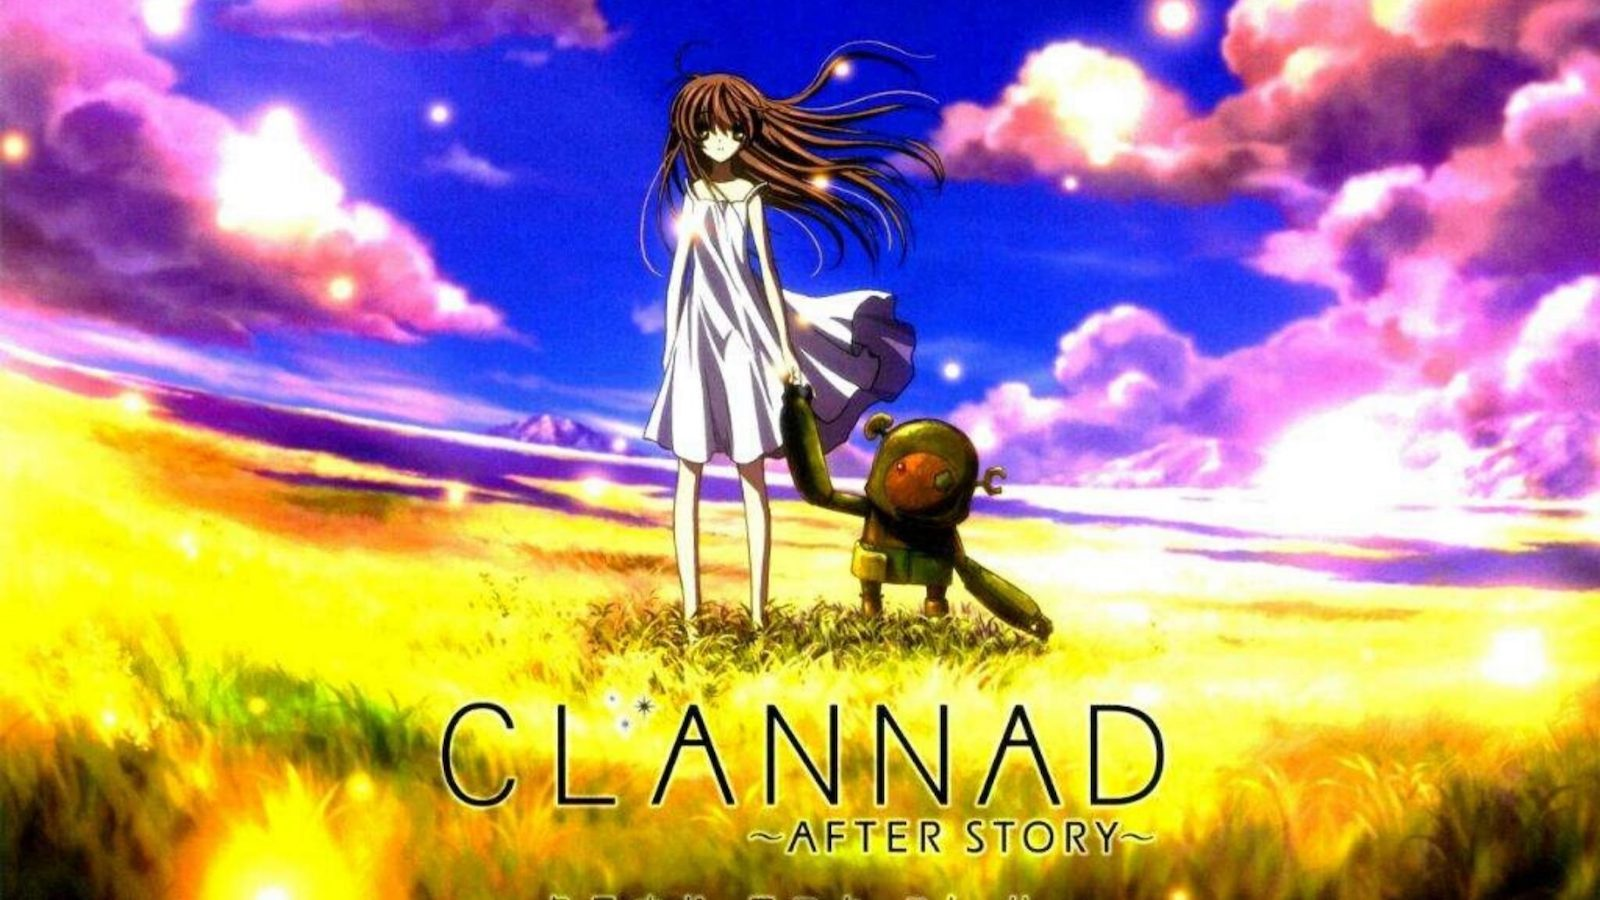 clannad-after-story-by-kyoto-animation-2048x1152.jpg